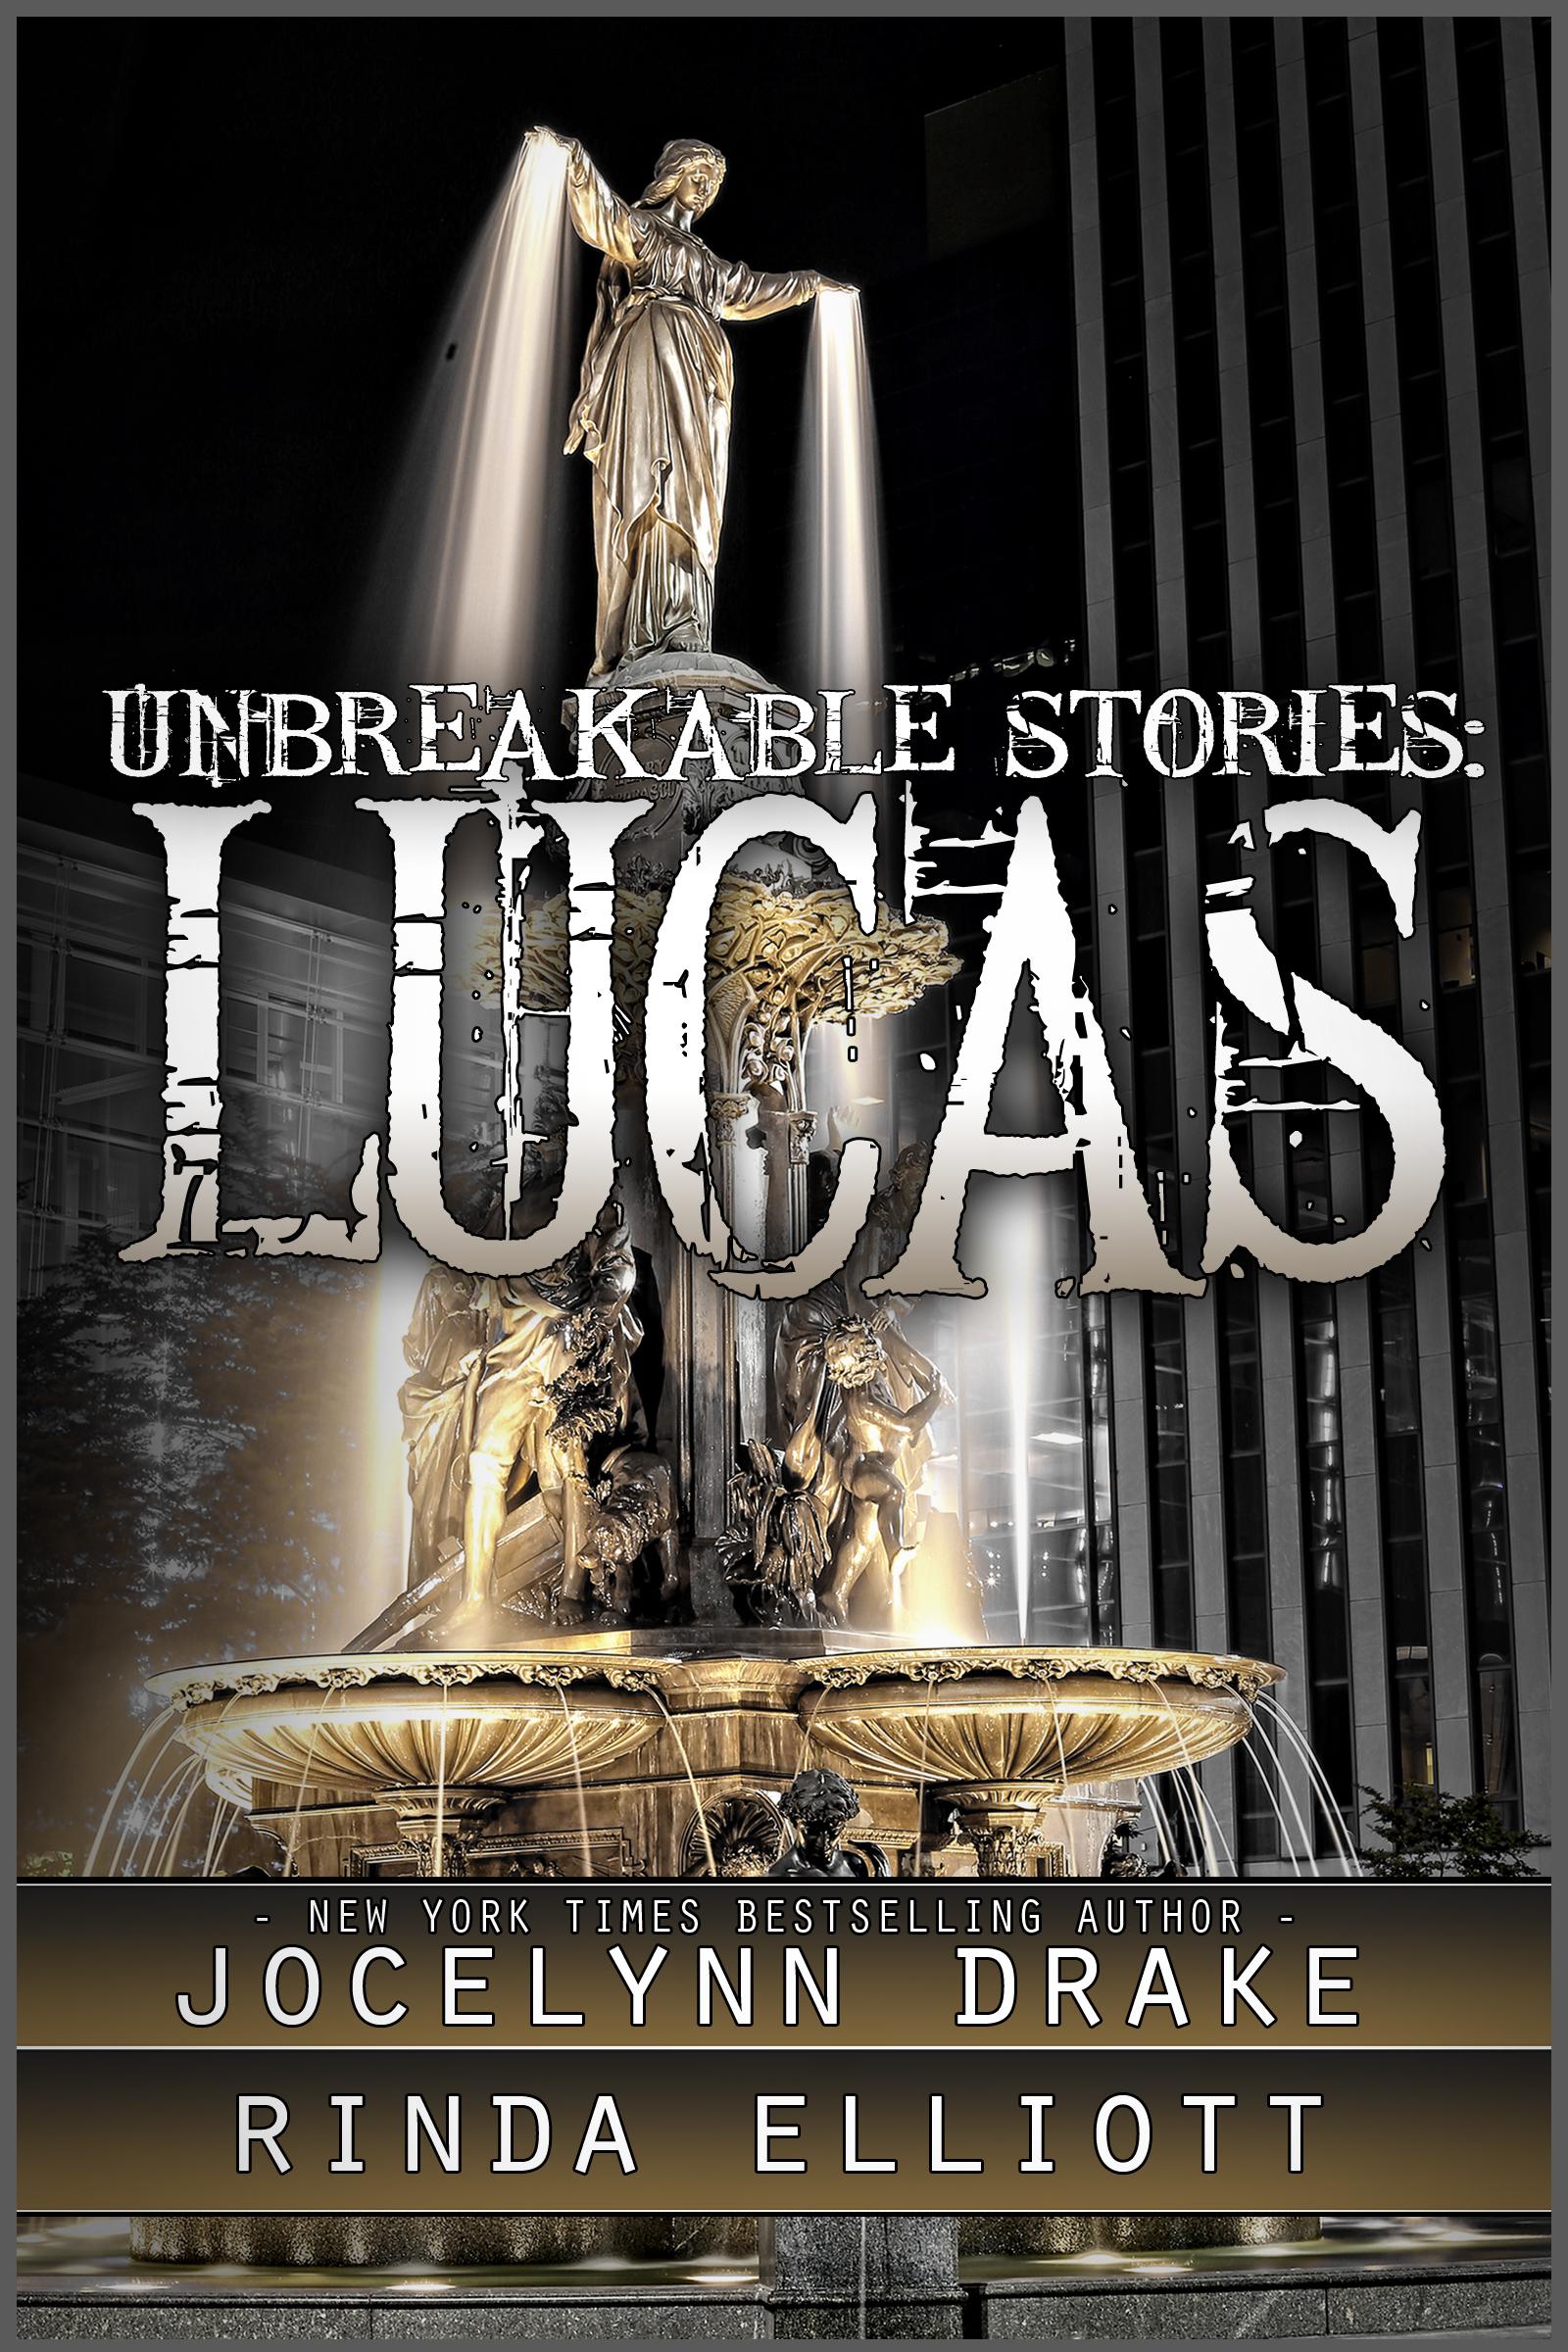 cover, unbreakable stories